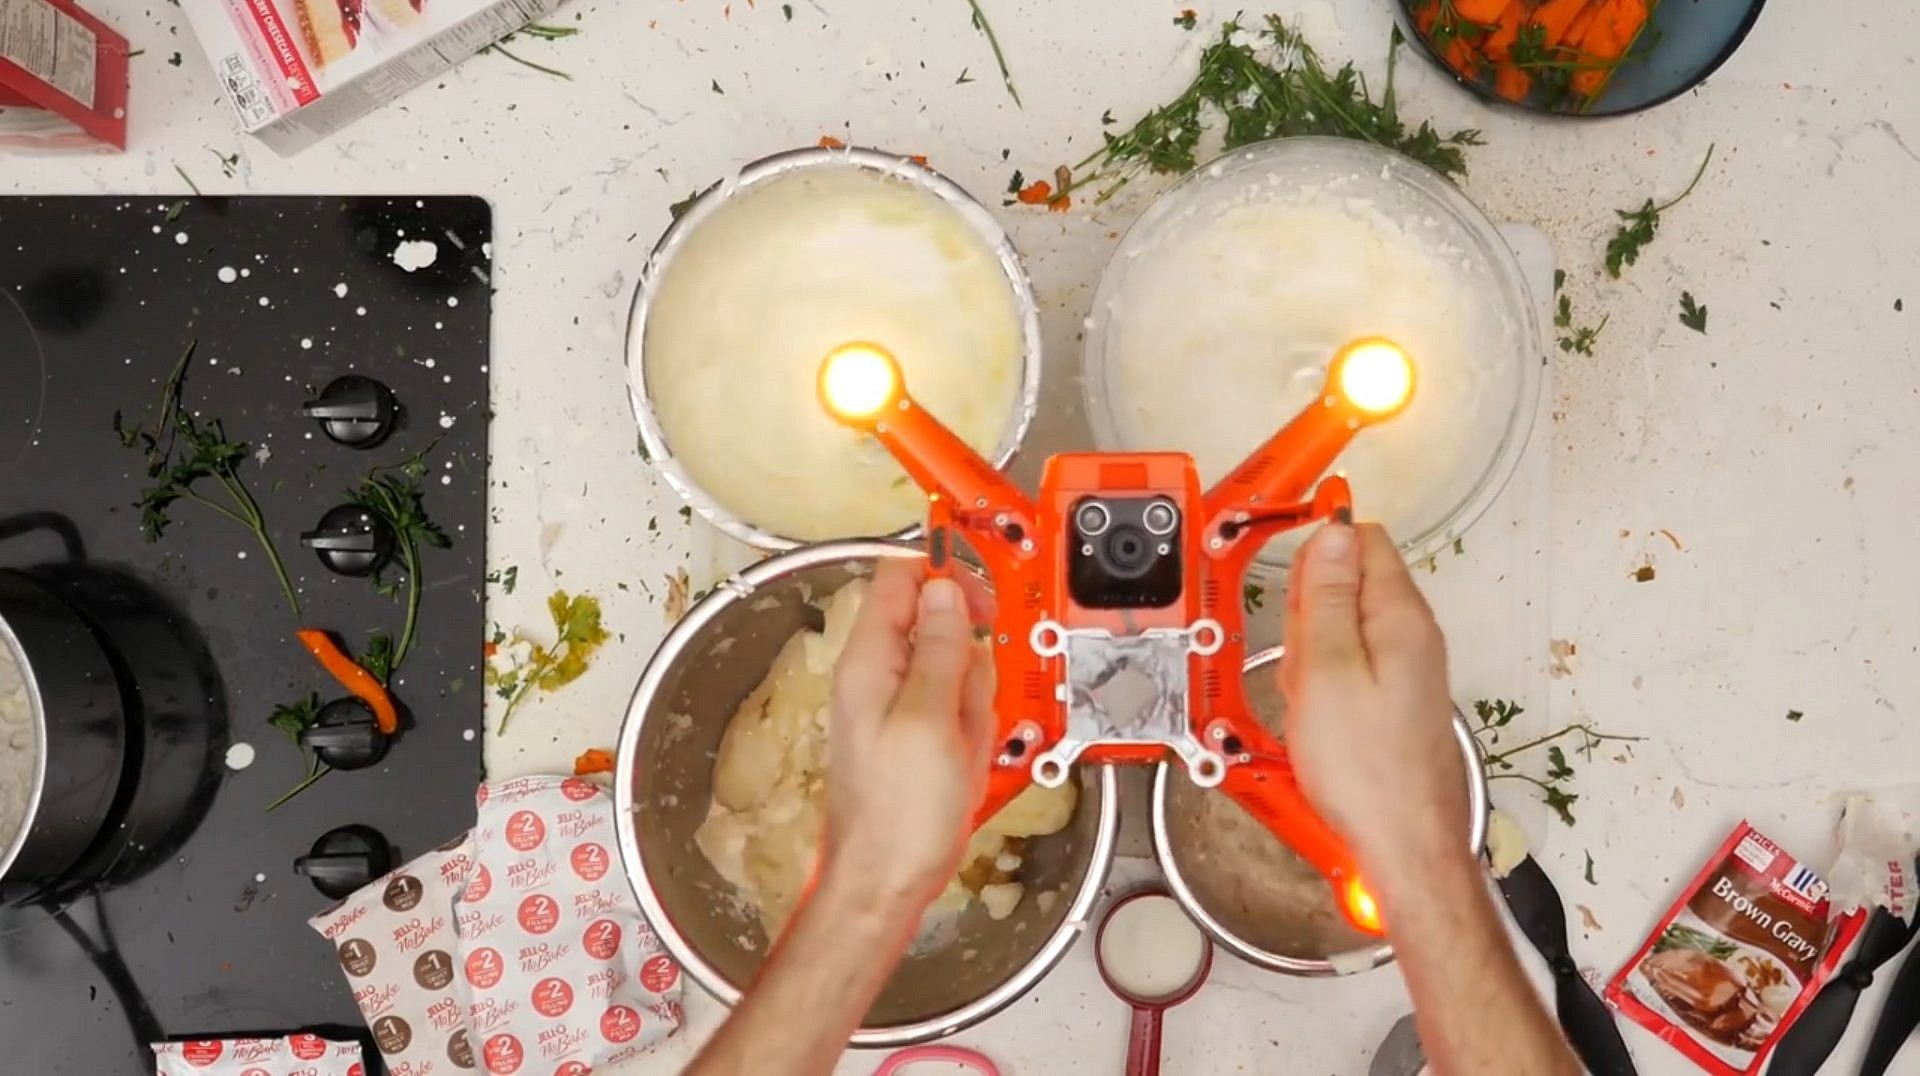 Drone prepare the Thanksgiving meal 01